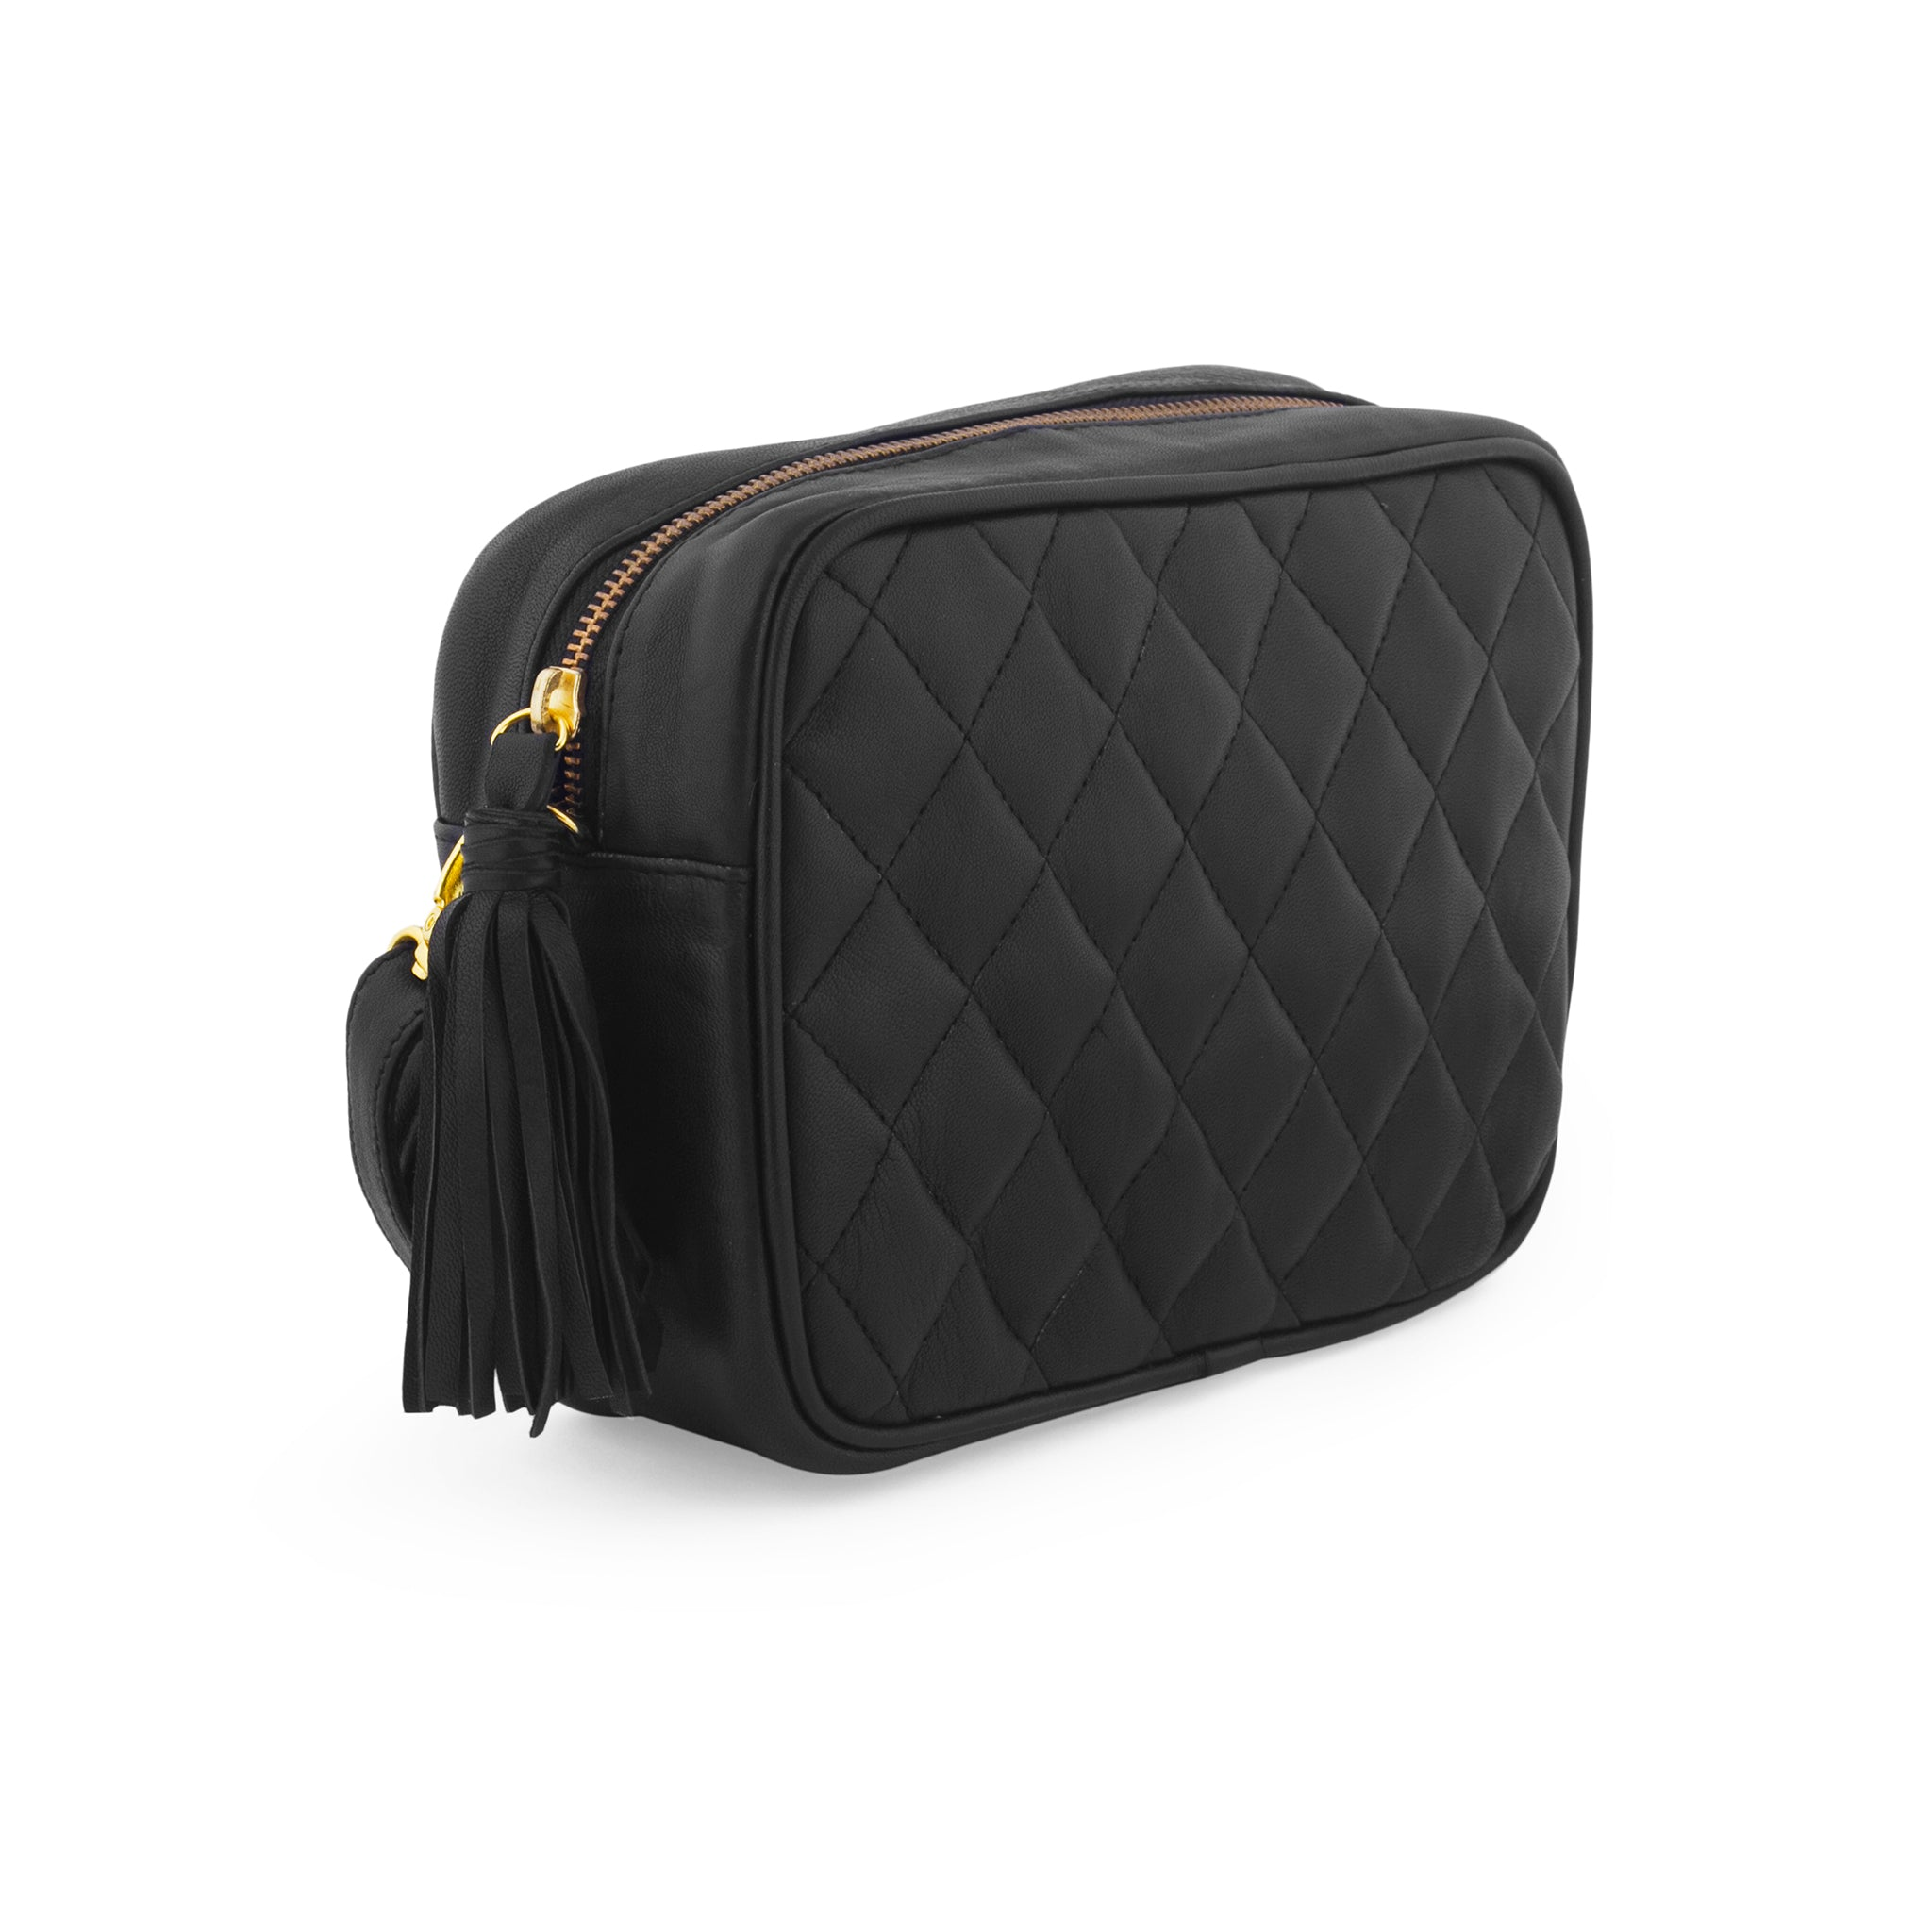 crossbody quilted camera bag; mz wallace quilted leather camera bag; black camera bag; matelasse mini camera bag; designer mini camera bag; disco gucci quilted bag; pink mini camera bag; black crossbody bag; spring 2018 bag trend; black leather mini camera bag; black leather quilted women's bag